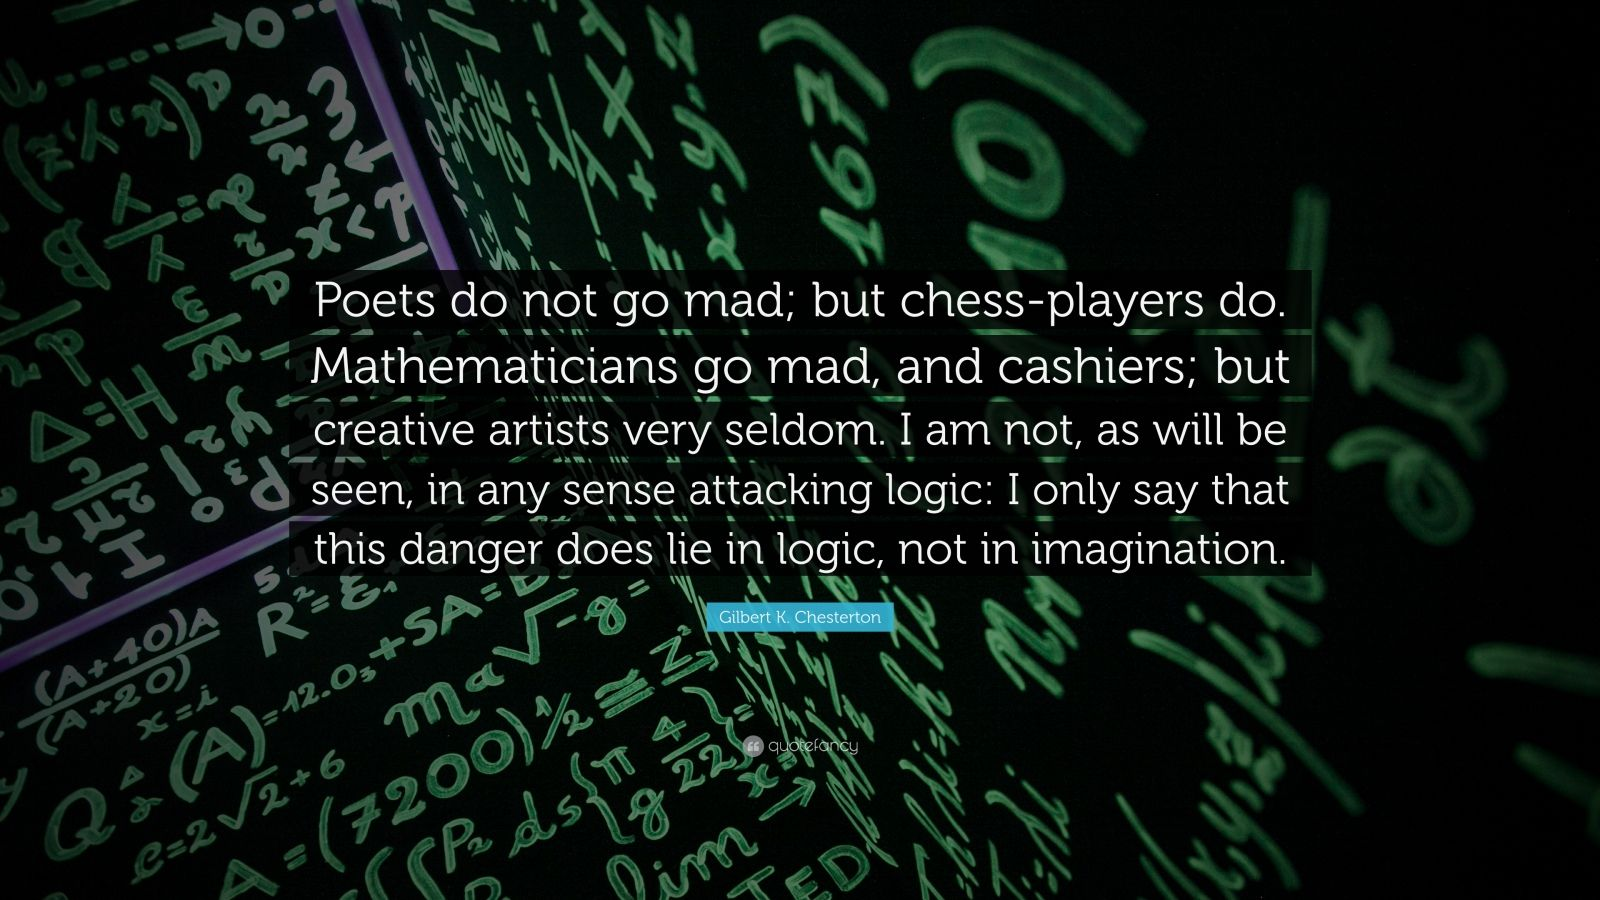 """Gilbert K. Chesterton Quote: """"Poets do not go mad; but chess-players do. Mathematicians go mad, and cashiers; but creative artists very seldom. I am not, as will be seen, in any sense attacking logic: I only say that this danger does lie in logic, not in imagination."""""""